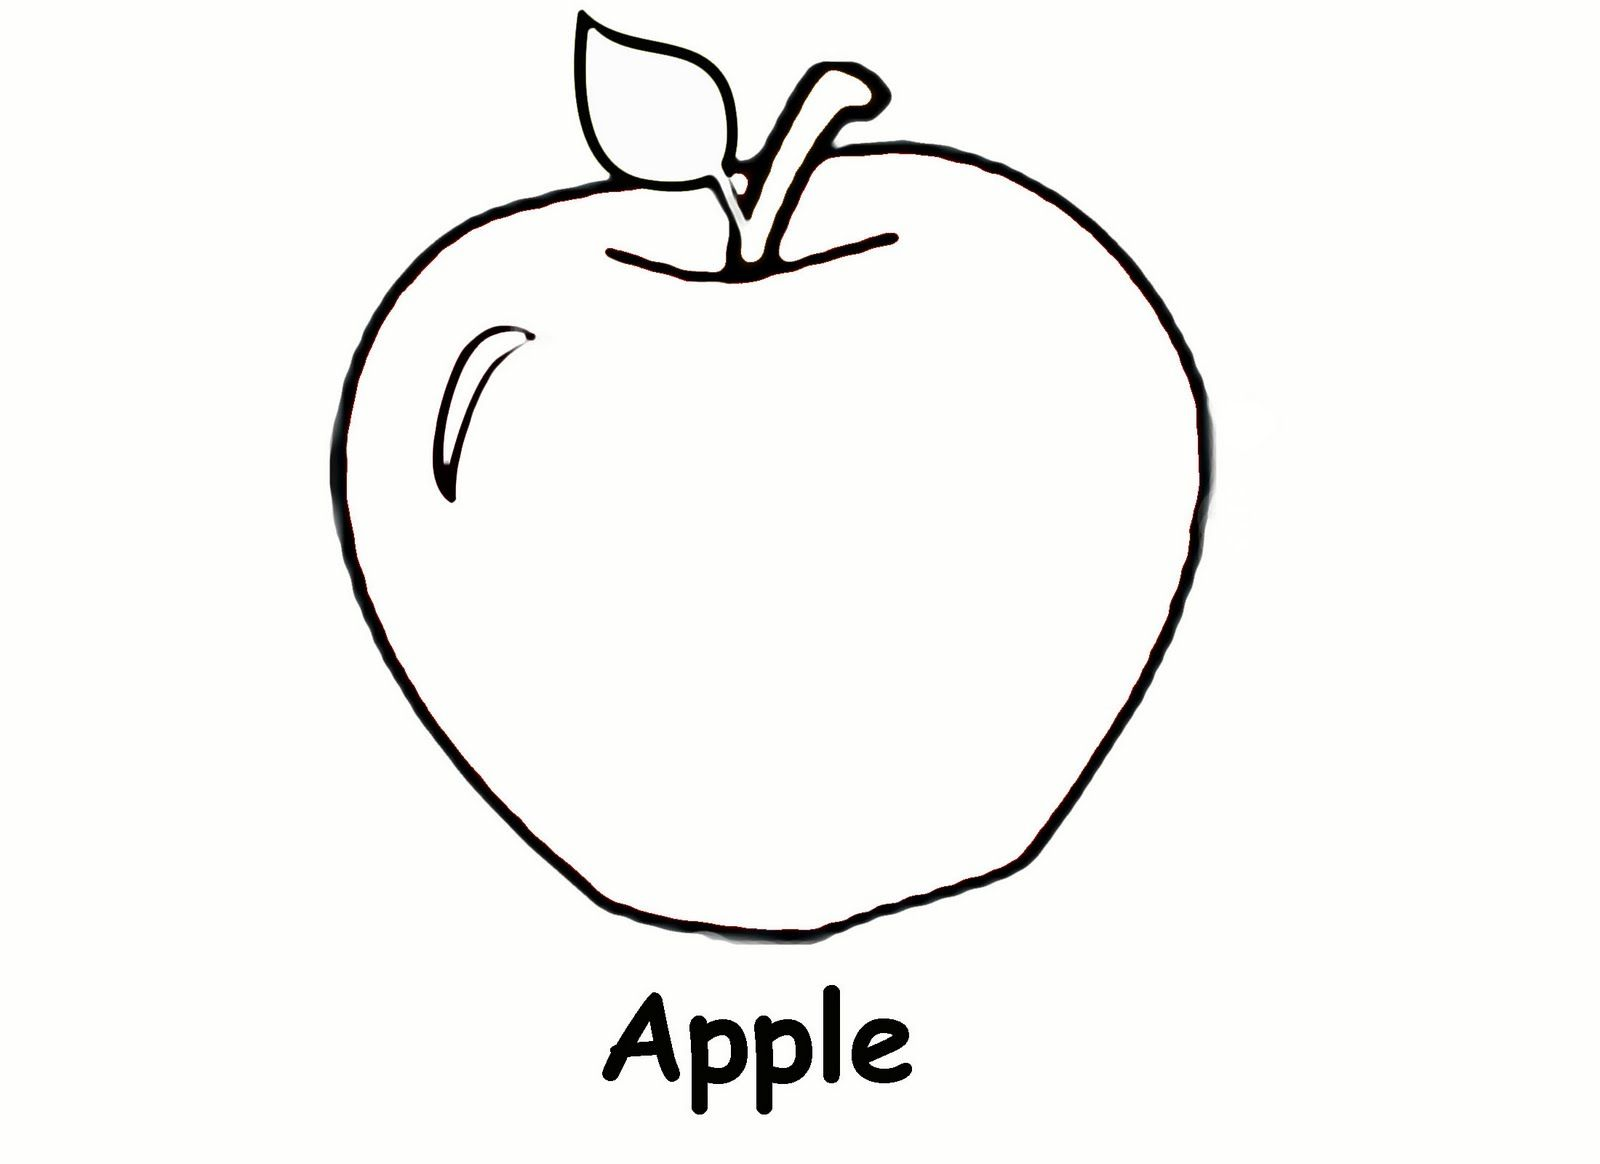 Colouring on worksheets - Preschool Apple Coloring Page Sketch Coloring Page Preschool Coloring Worksheets Free Printables